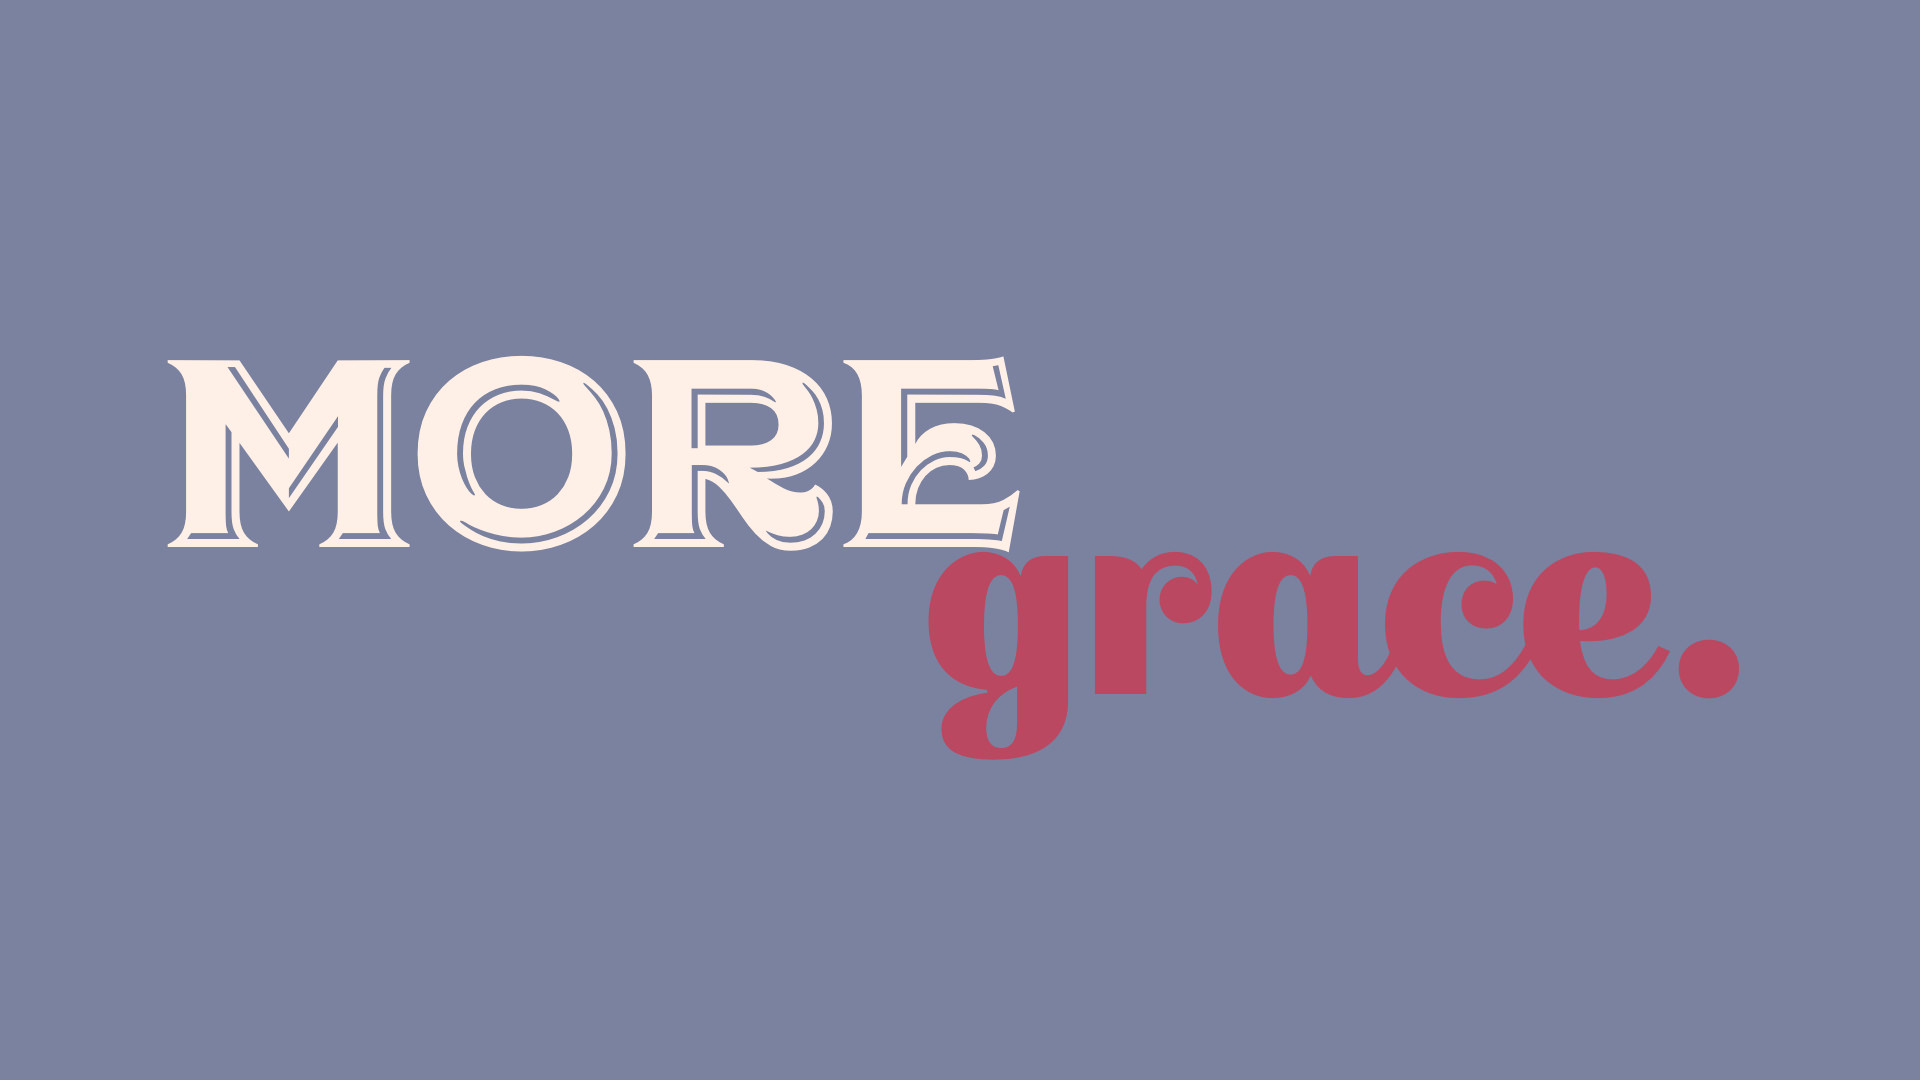 We all need more grace. Just not in the way you expect.